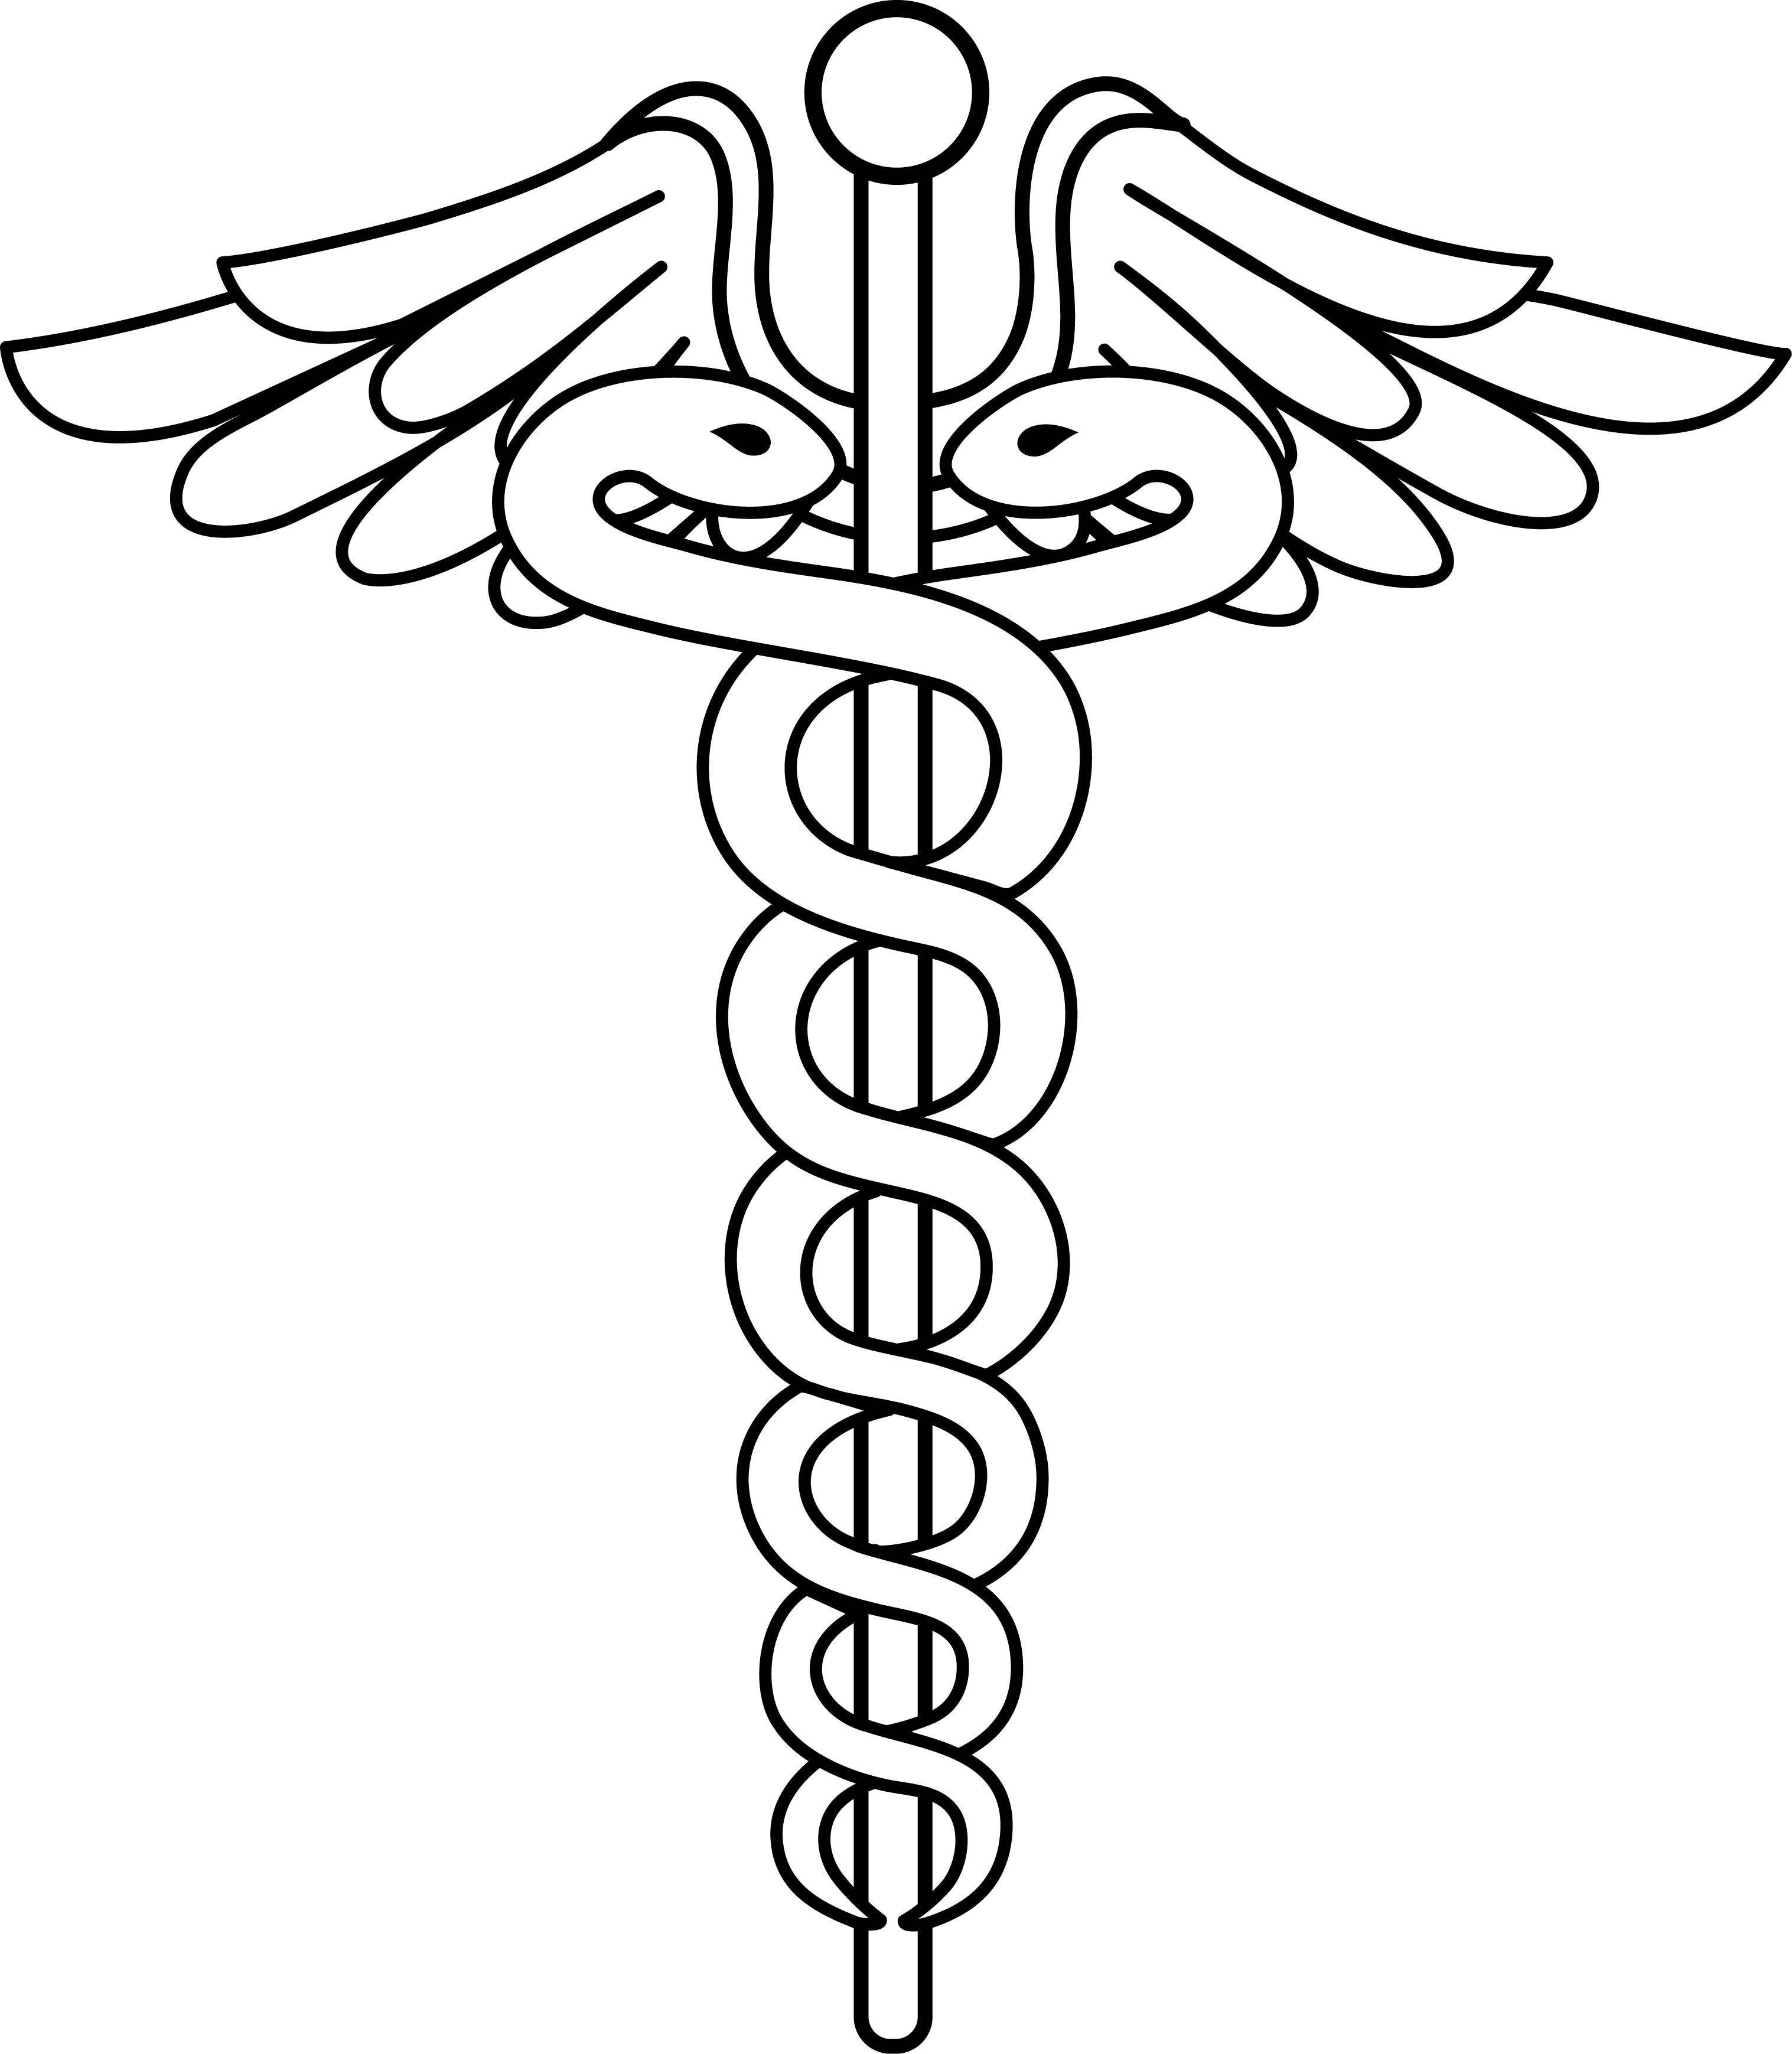 Doctor Symbol Clip Art Black and White